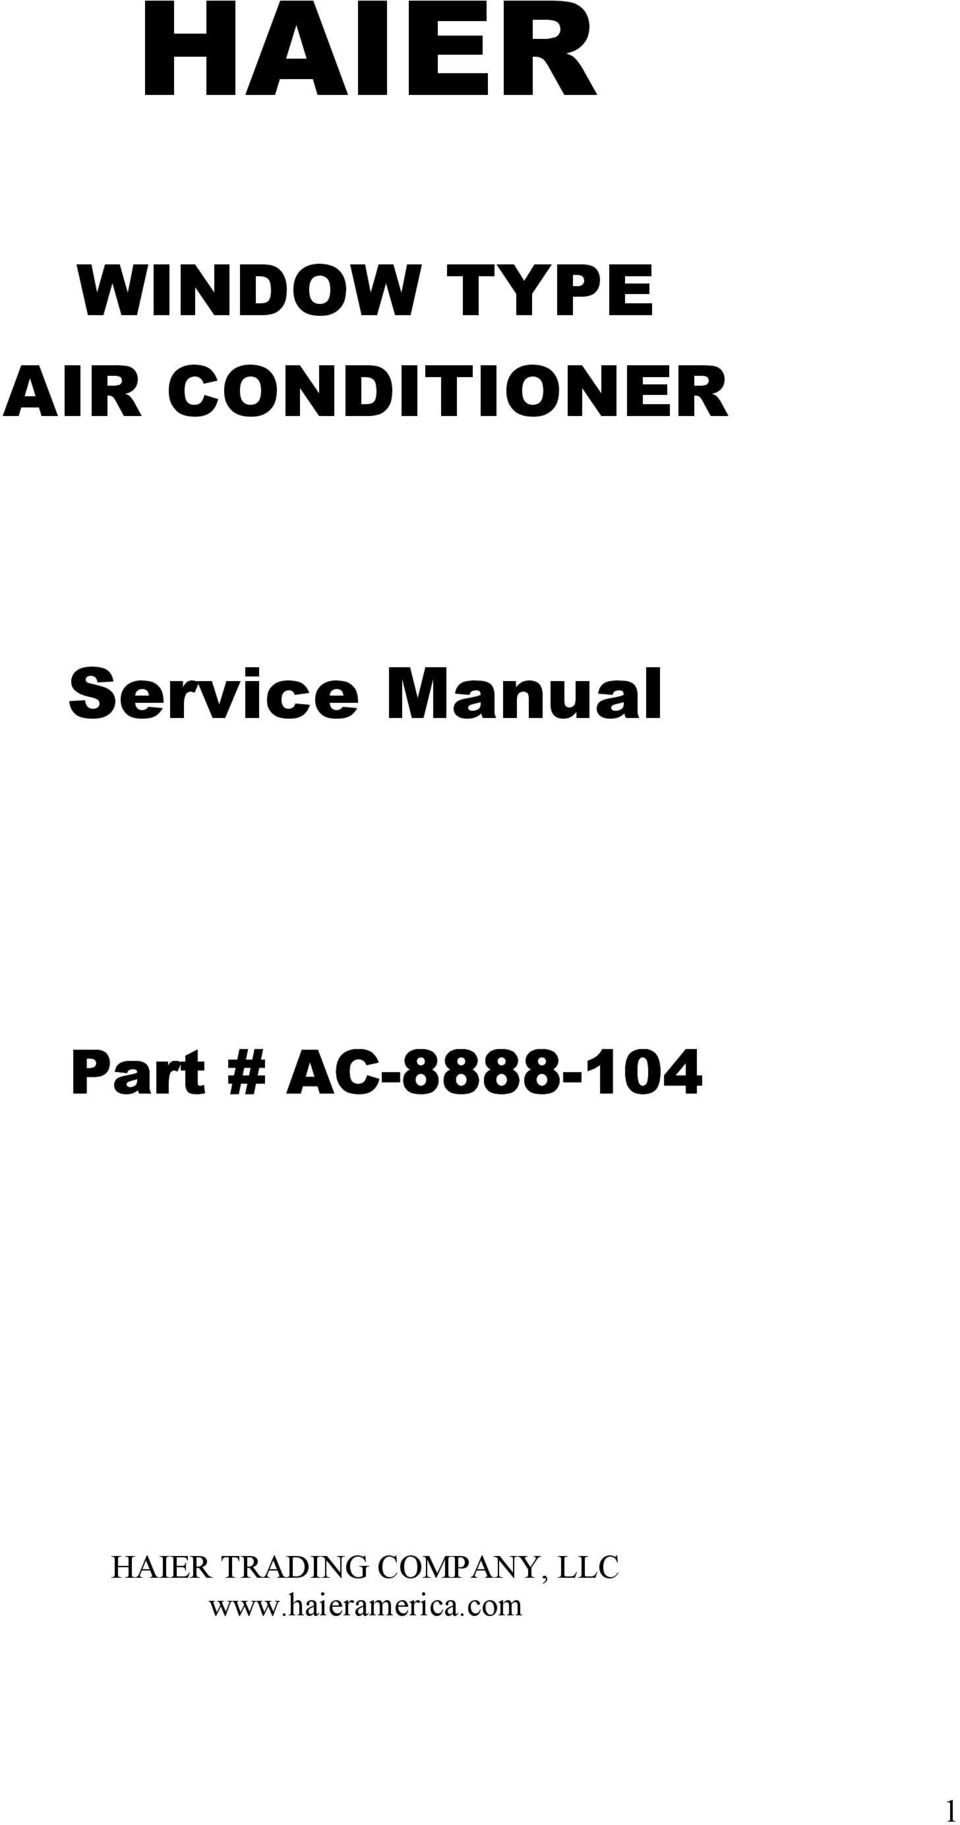 HAIER WINDOW TYPE AIR CONDITIONER. Service Manual. Part